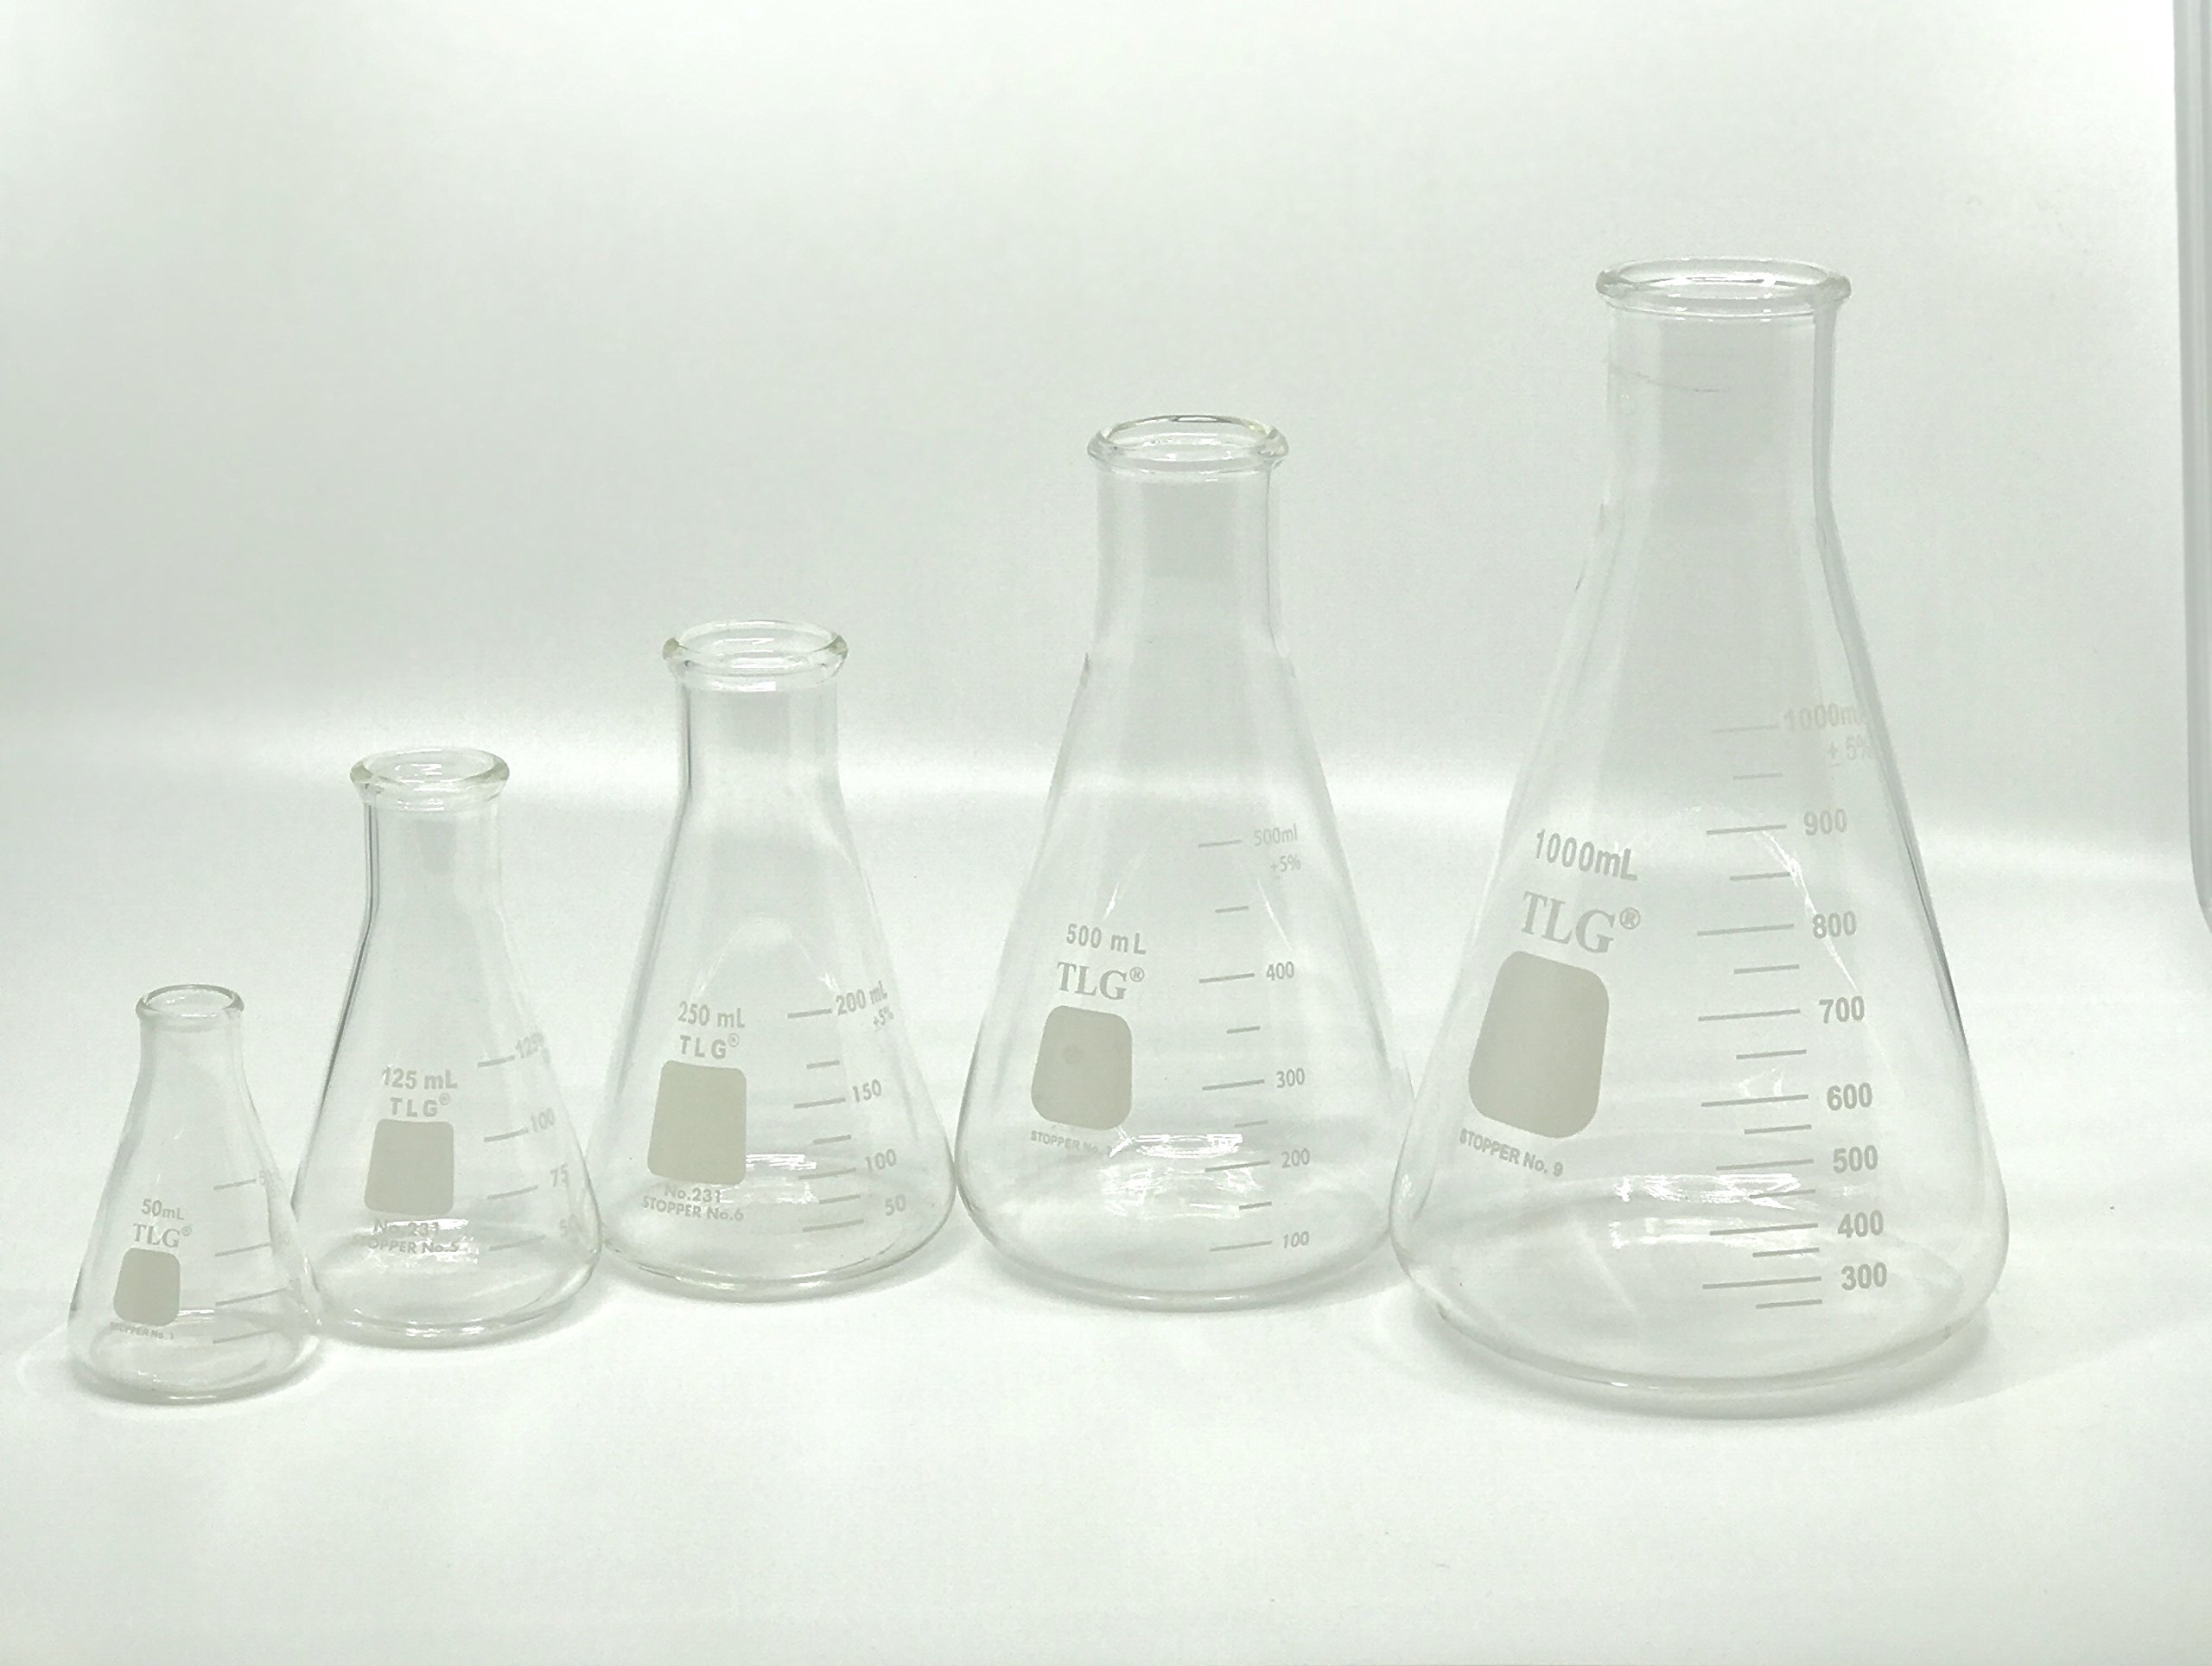 Chem Science INC 231.202.SE5 Erlenmeyer Flask Set, Narrow Neck with Graduation, 50, 125, 250, 500, 1000 mL (Pack of 5)